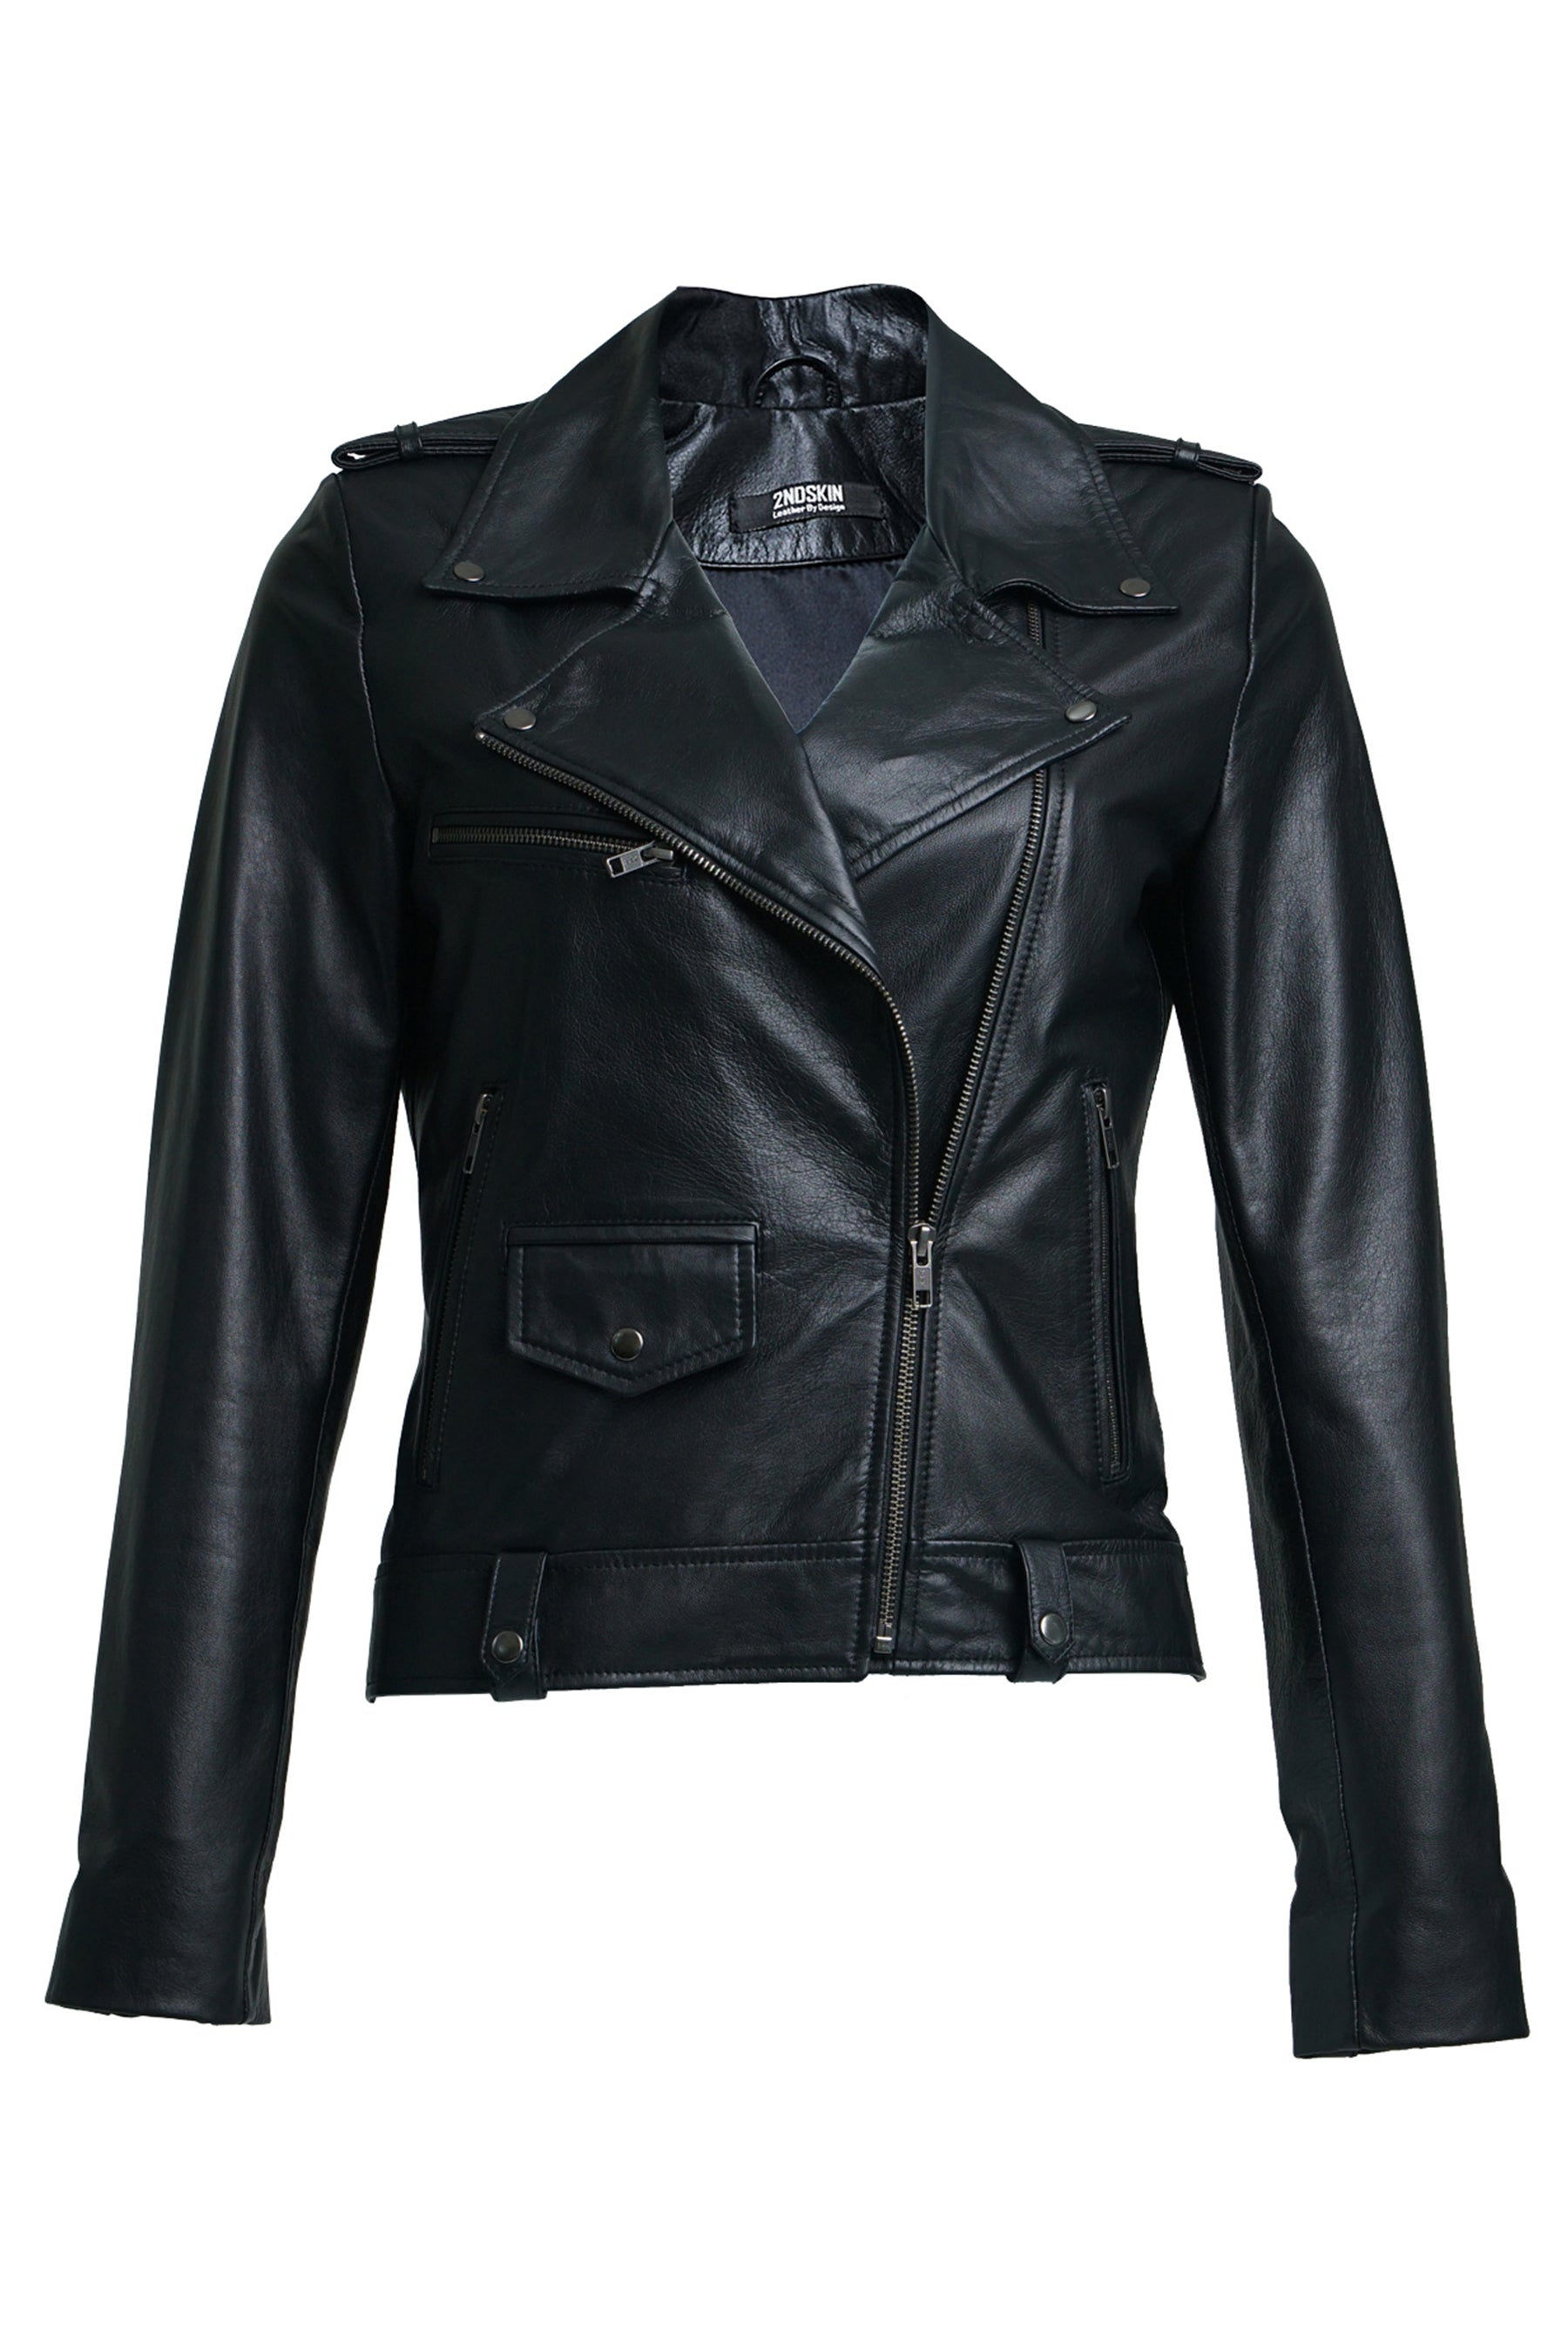 Harper Moto Jacket Black Gun Metal